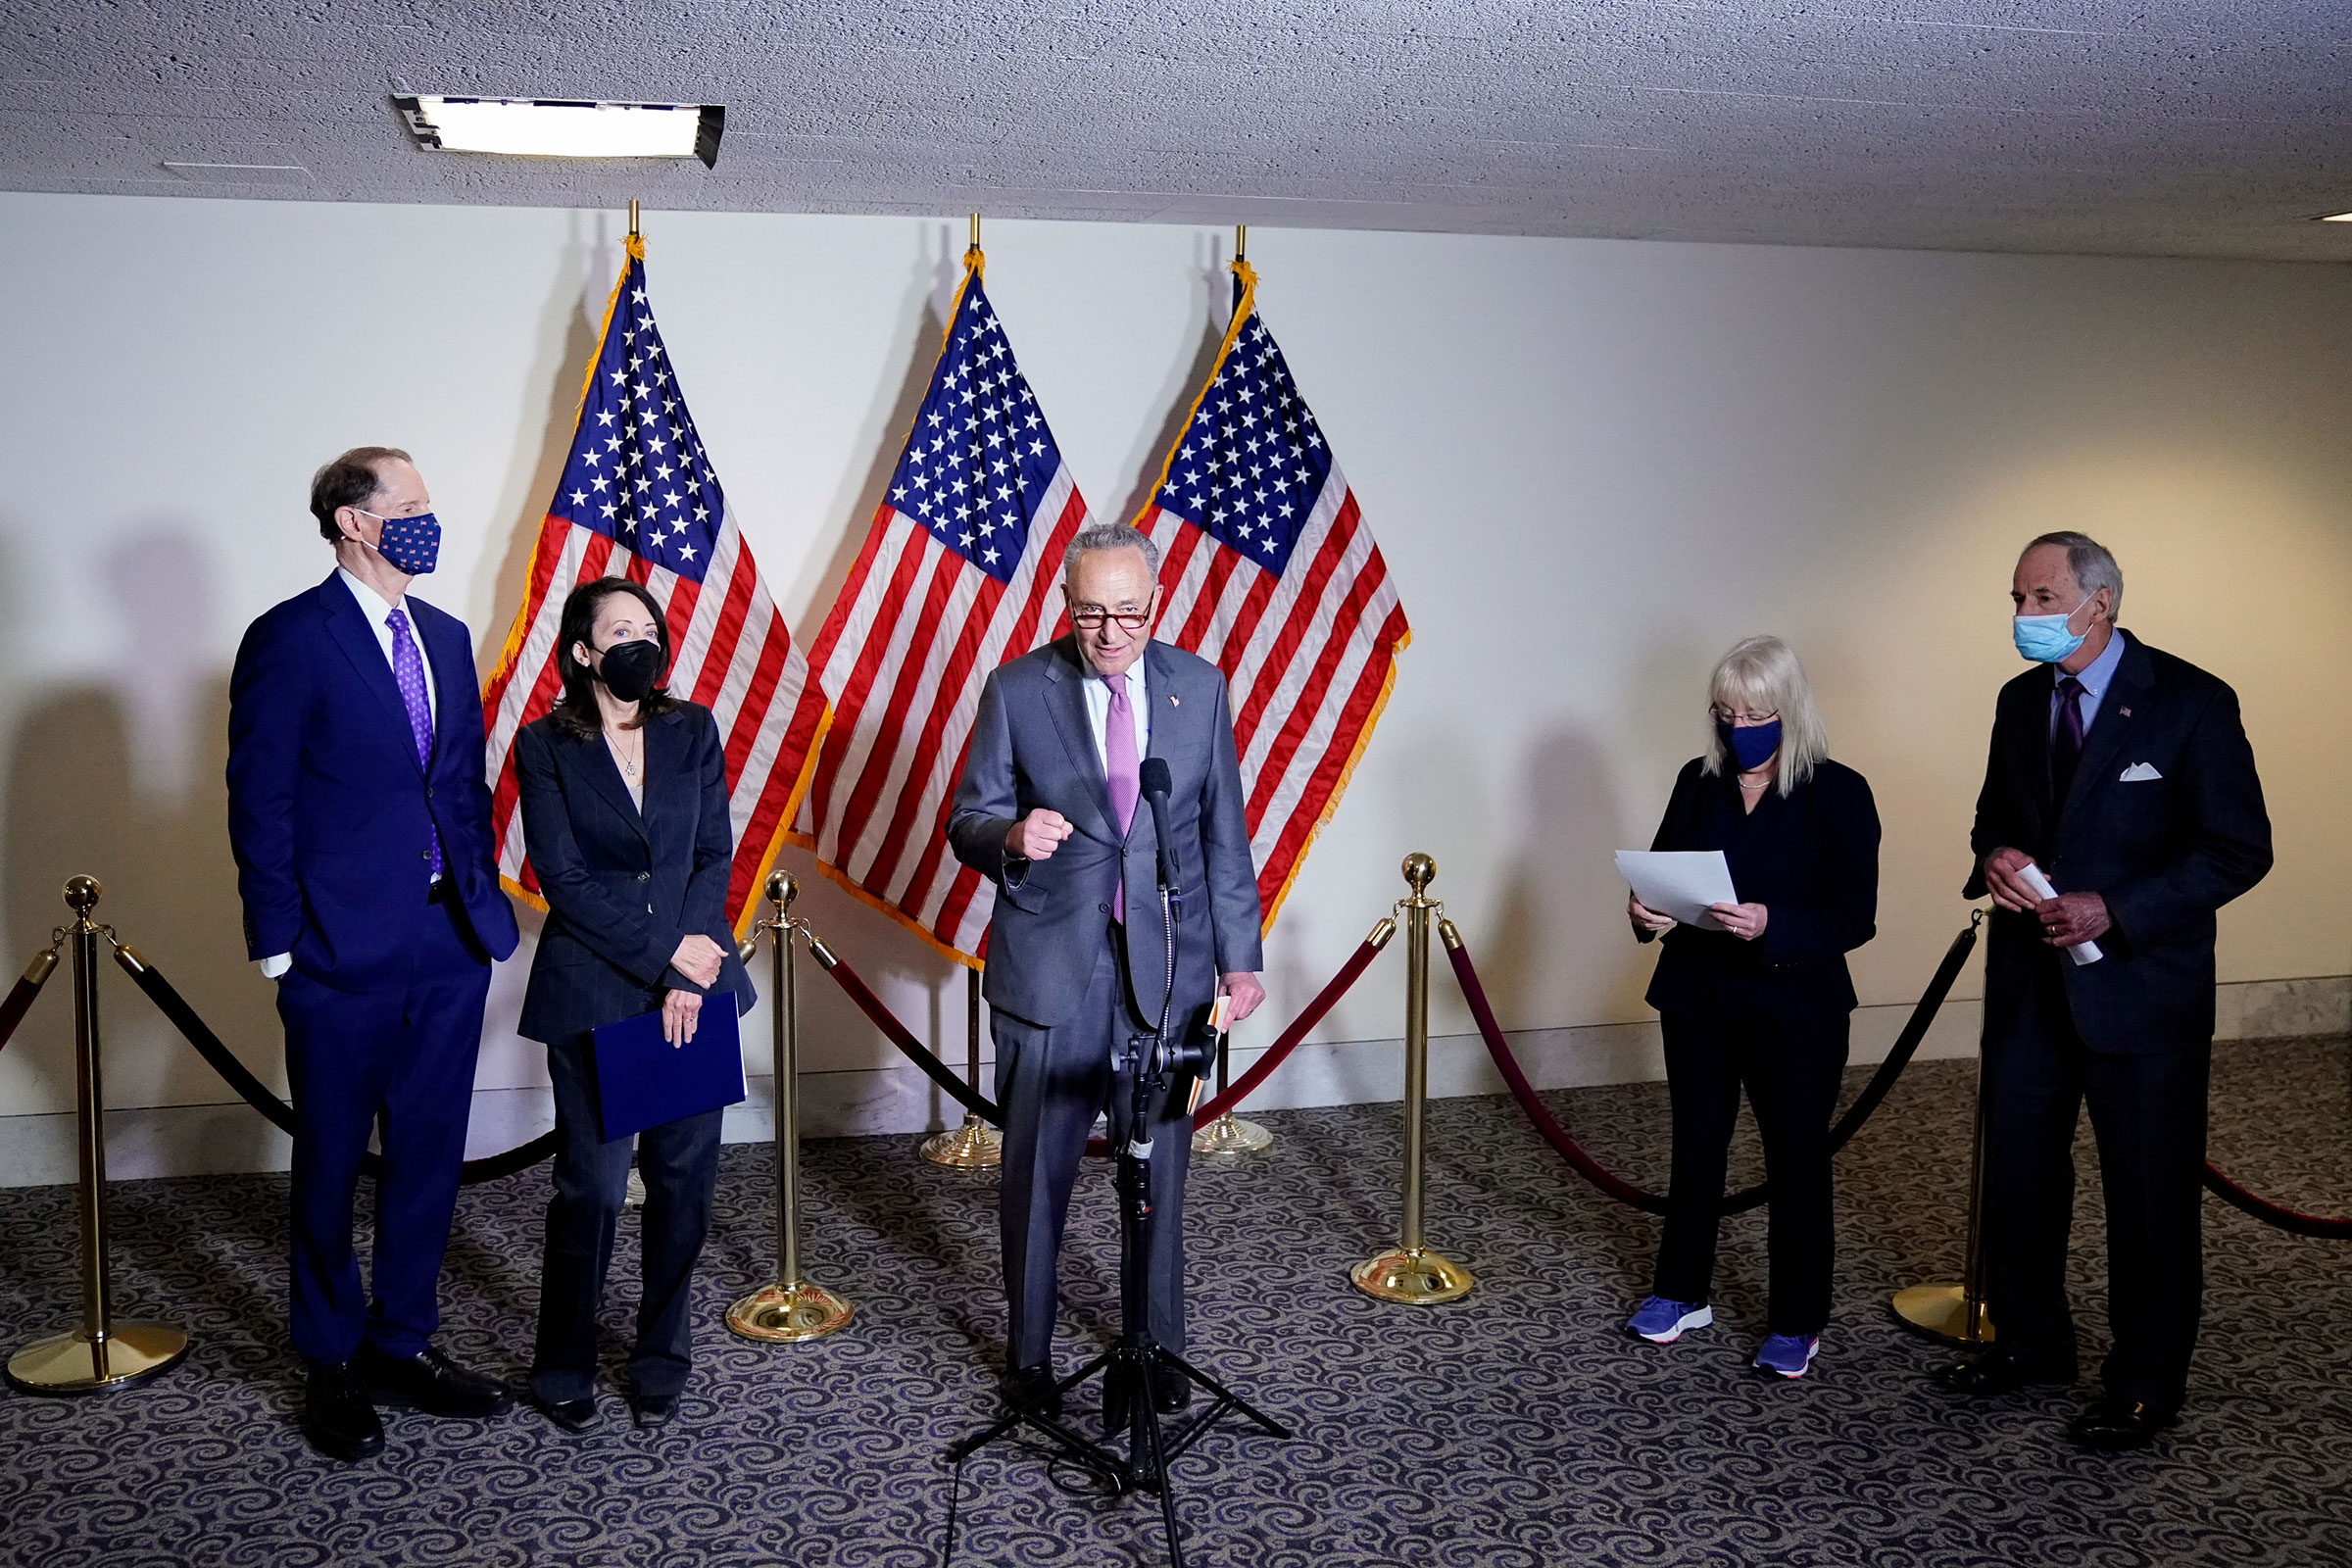 Senate Majority Leader Chuck Schumer and Democratic leadership hold a news conference after the first Democratic luncheon meeting since COVID-19 restrictions went into effect on Capitol Hill in Washington, on April 13, 2021.